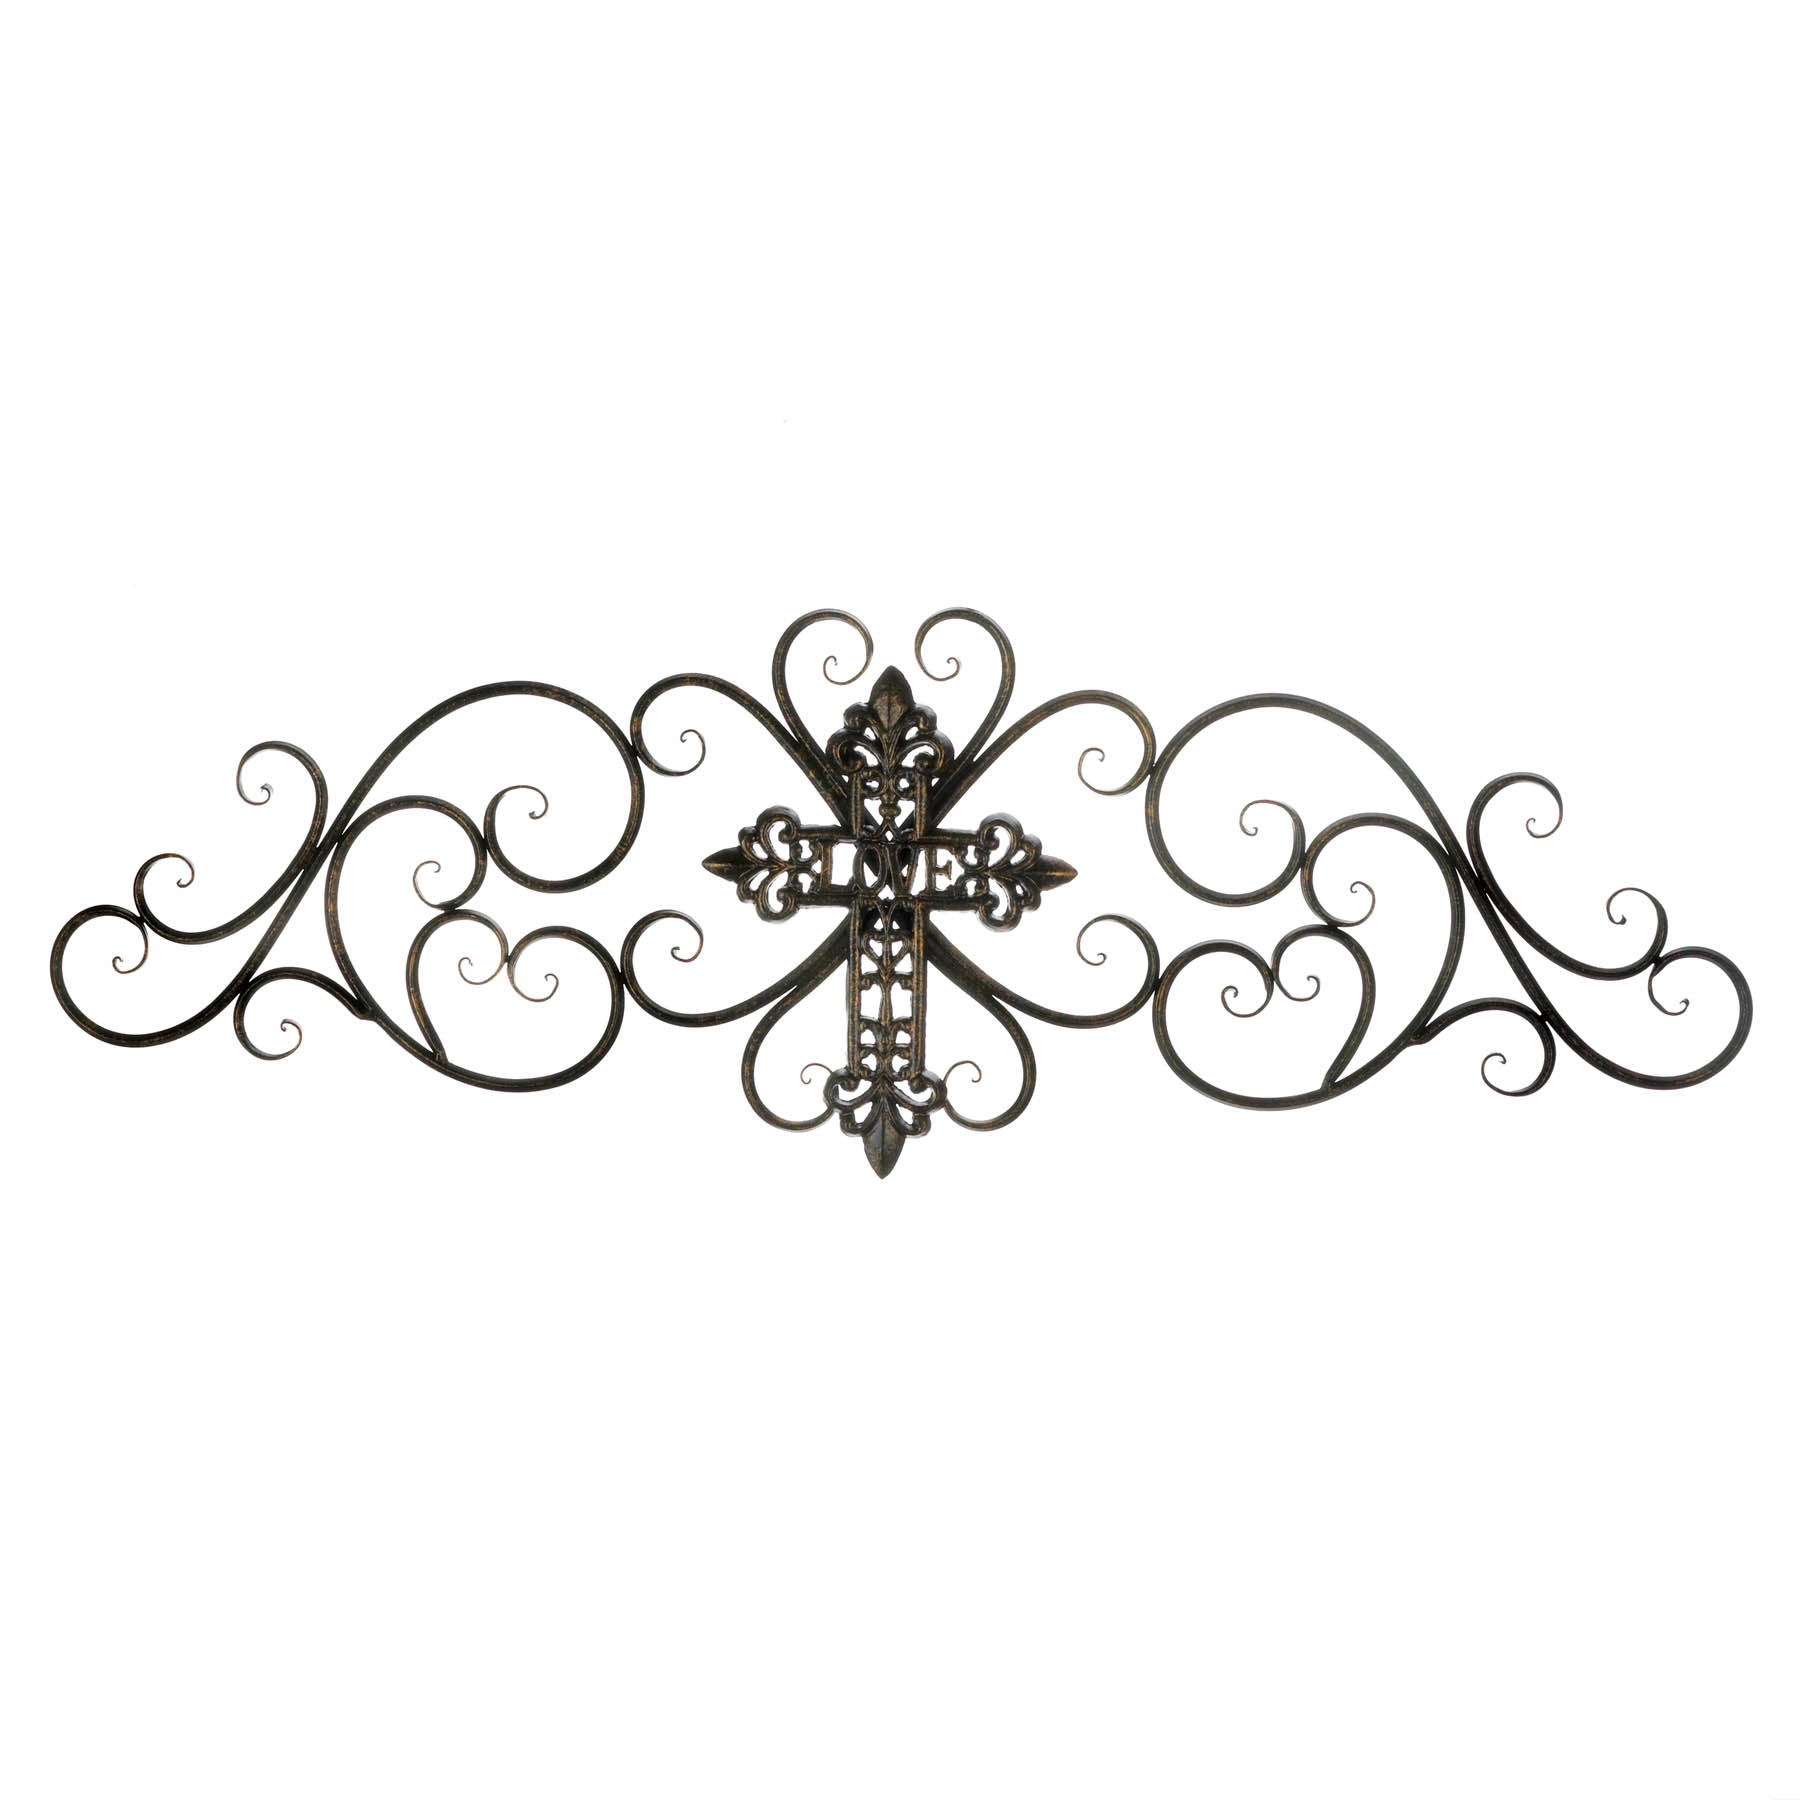 Accent Plus Cross Scrollwork Wall Plaque - 10018766